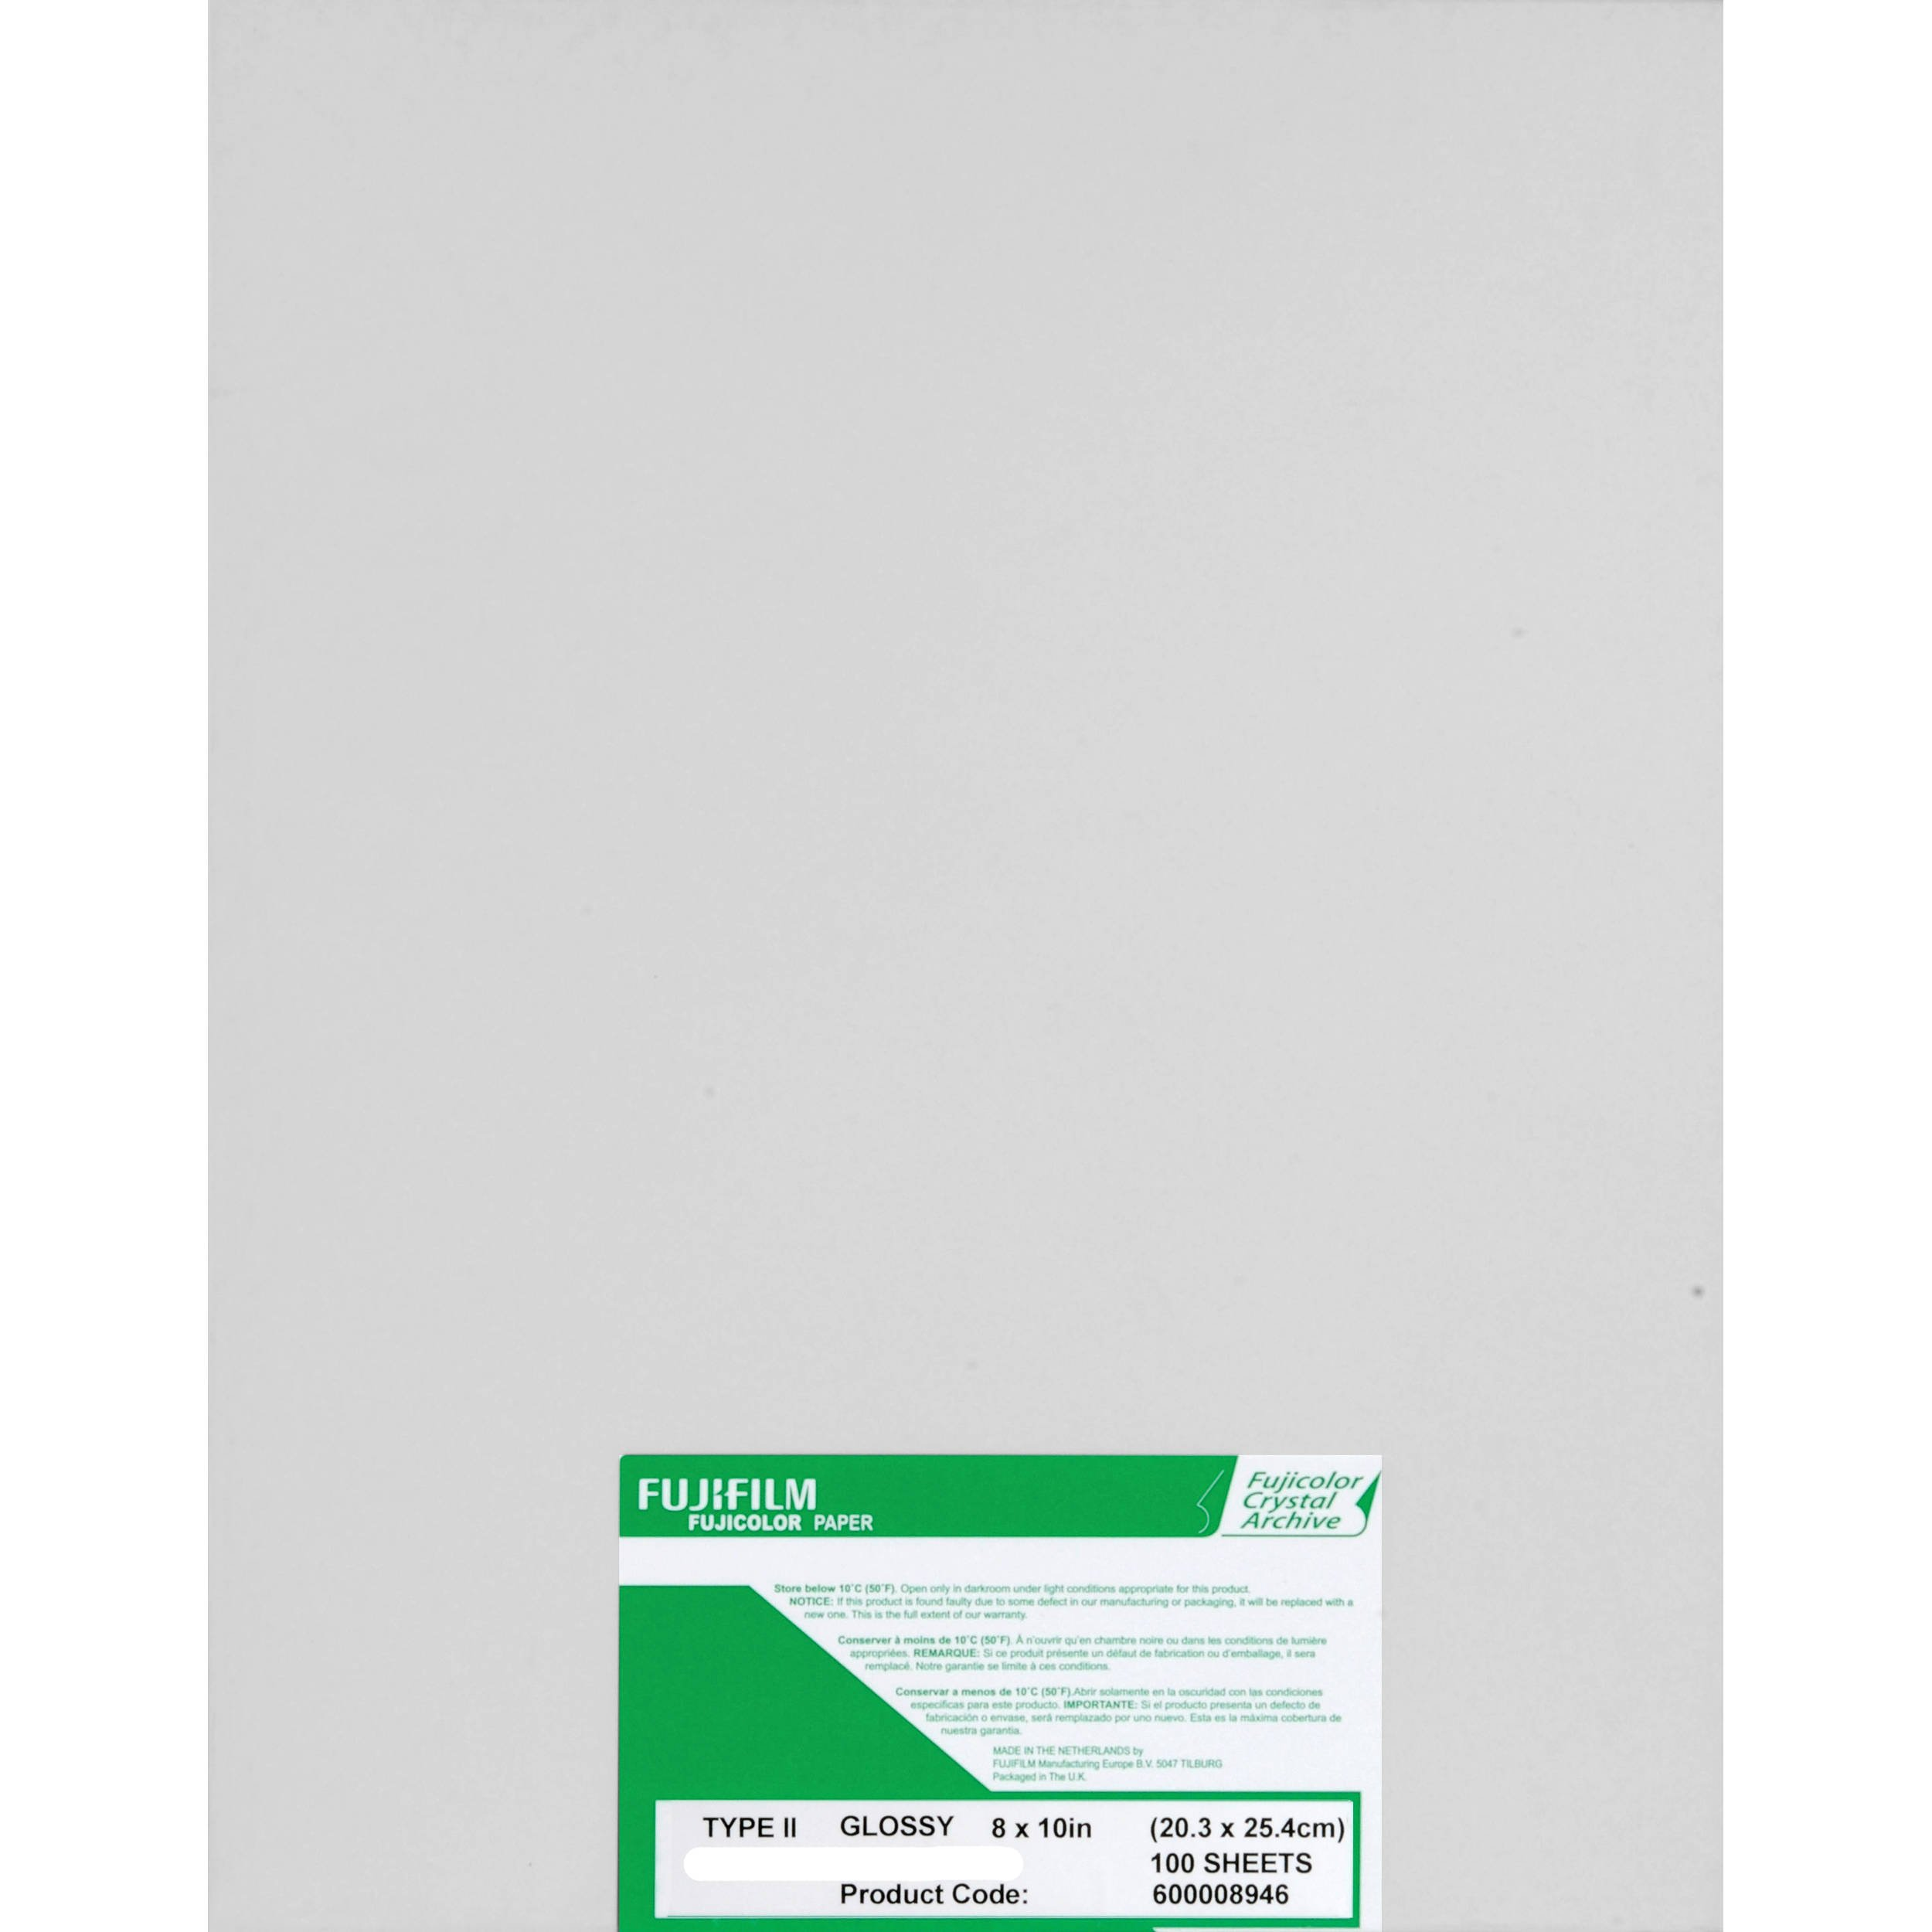 Fujifilm Fujicolor Crystal Archive Super Type-II Color Enlarging Paper - 8x10'' - 100 Sheets - Glossy Surface.